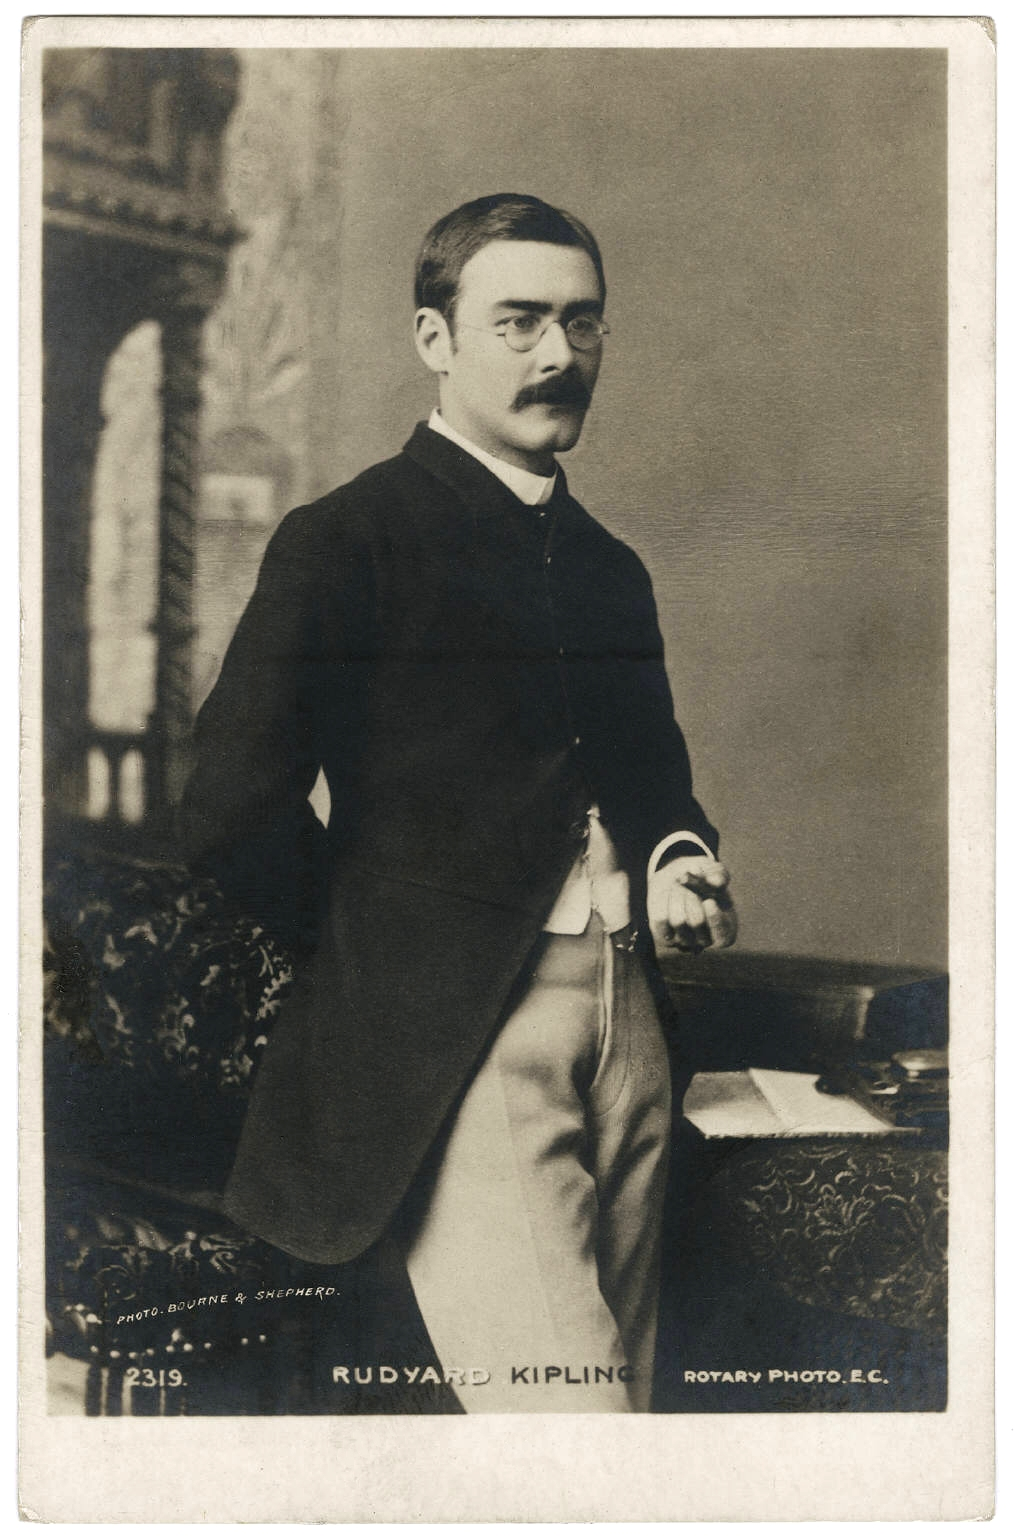 Bourne & Shepherd's photographic postcard portrait of Rudyard Kipling (courtesy of the Beinecke Rare Book & Manuscript Library, Yale University via Wikipedia Commons)